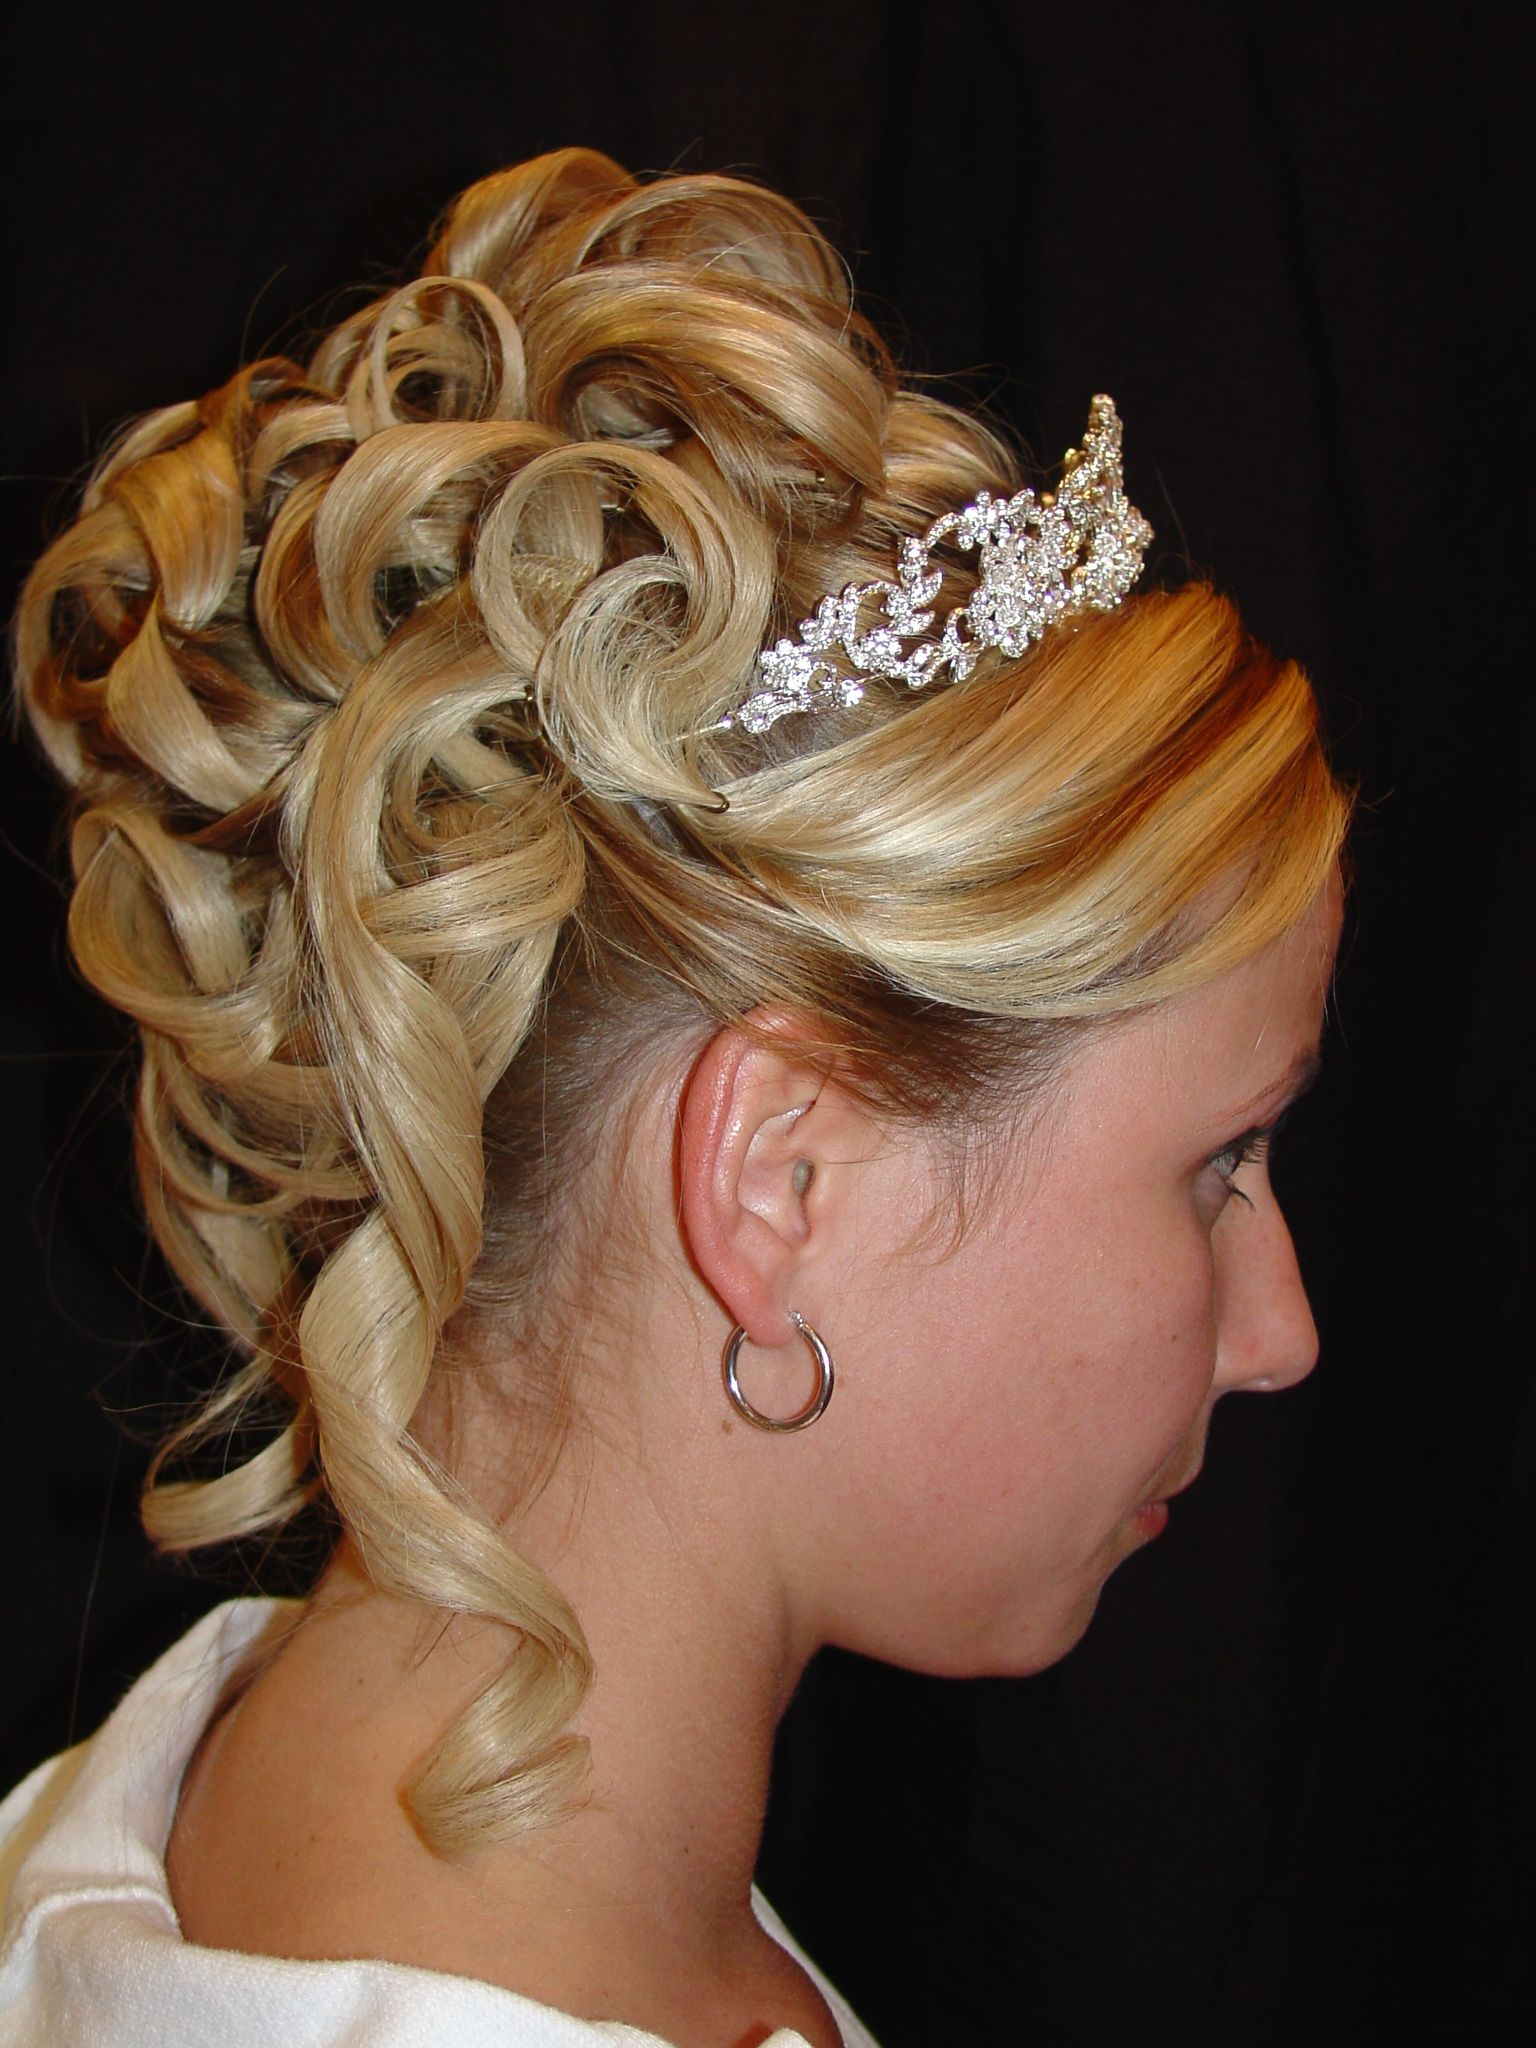 Prom hair my style pinterest prom hair prom and hair style